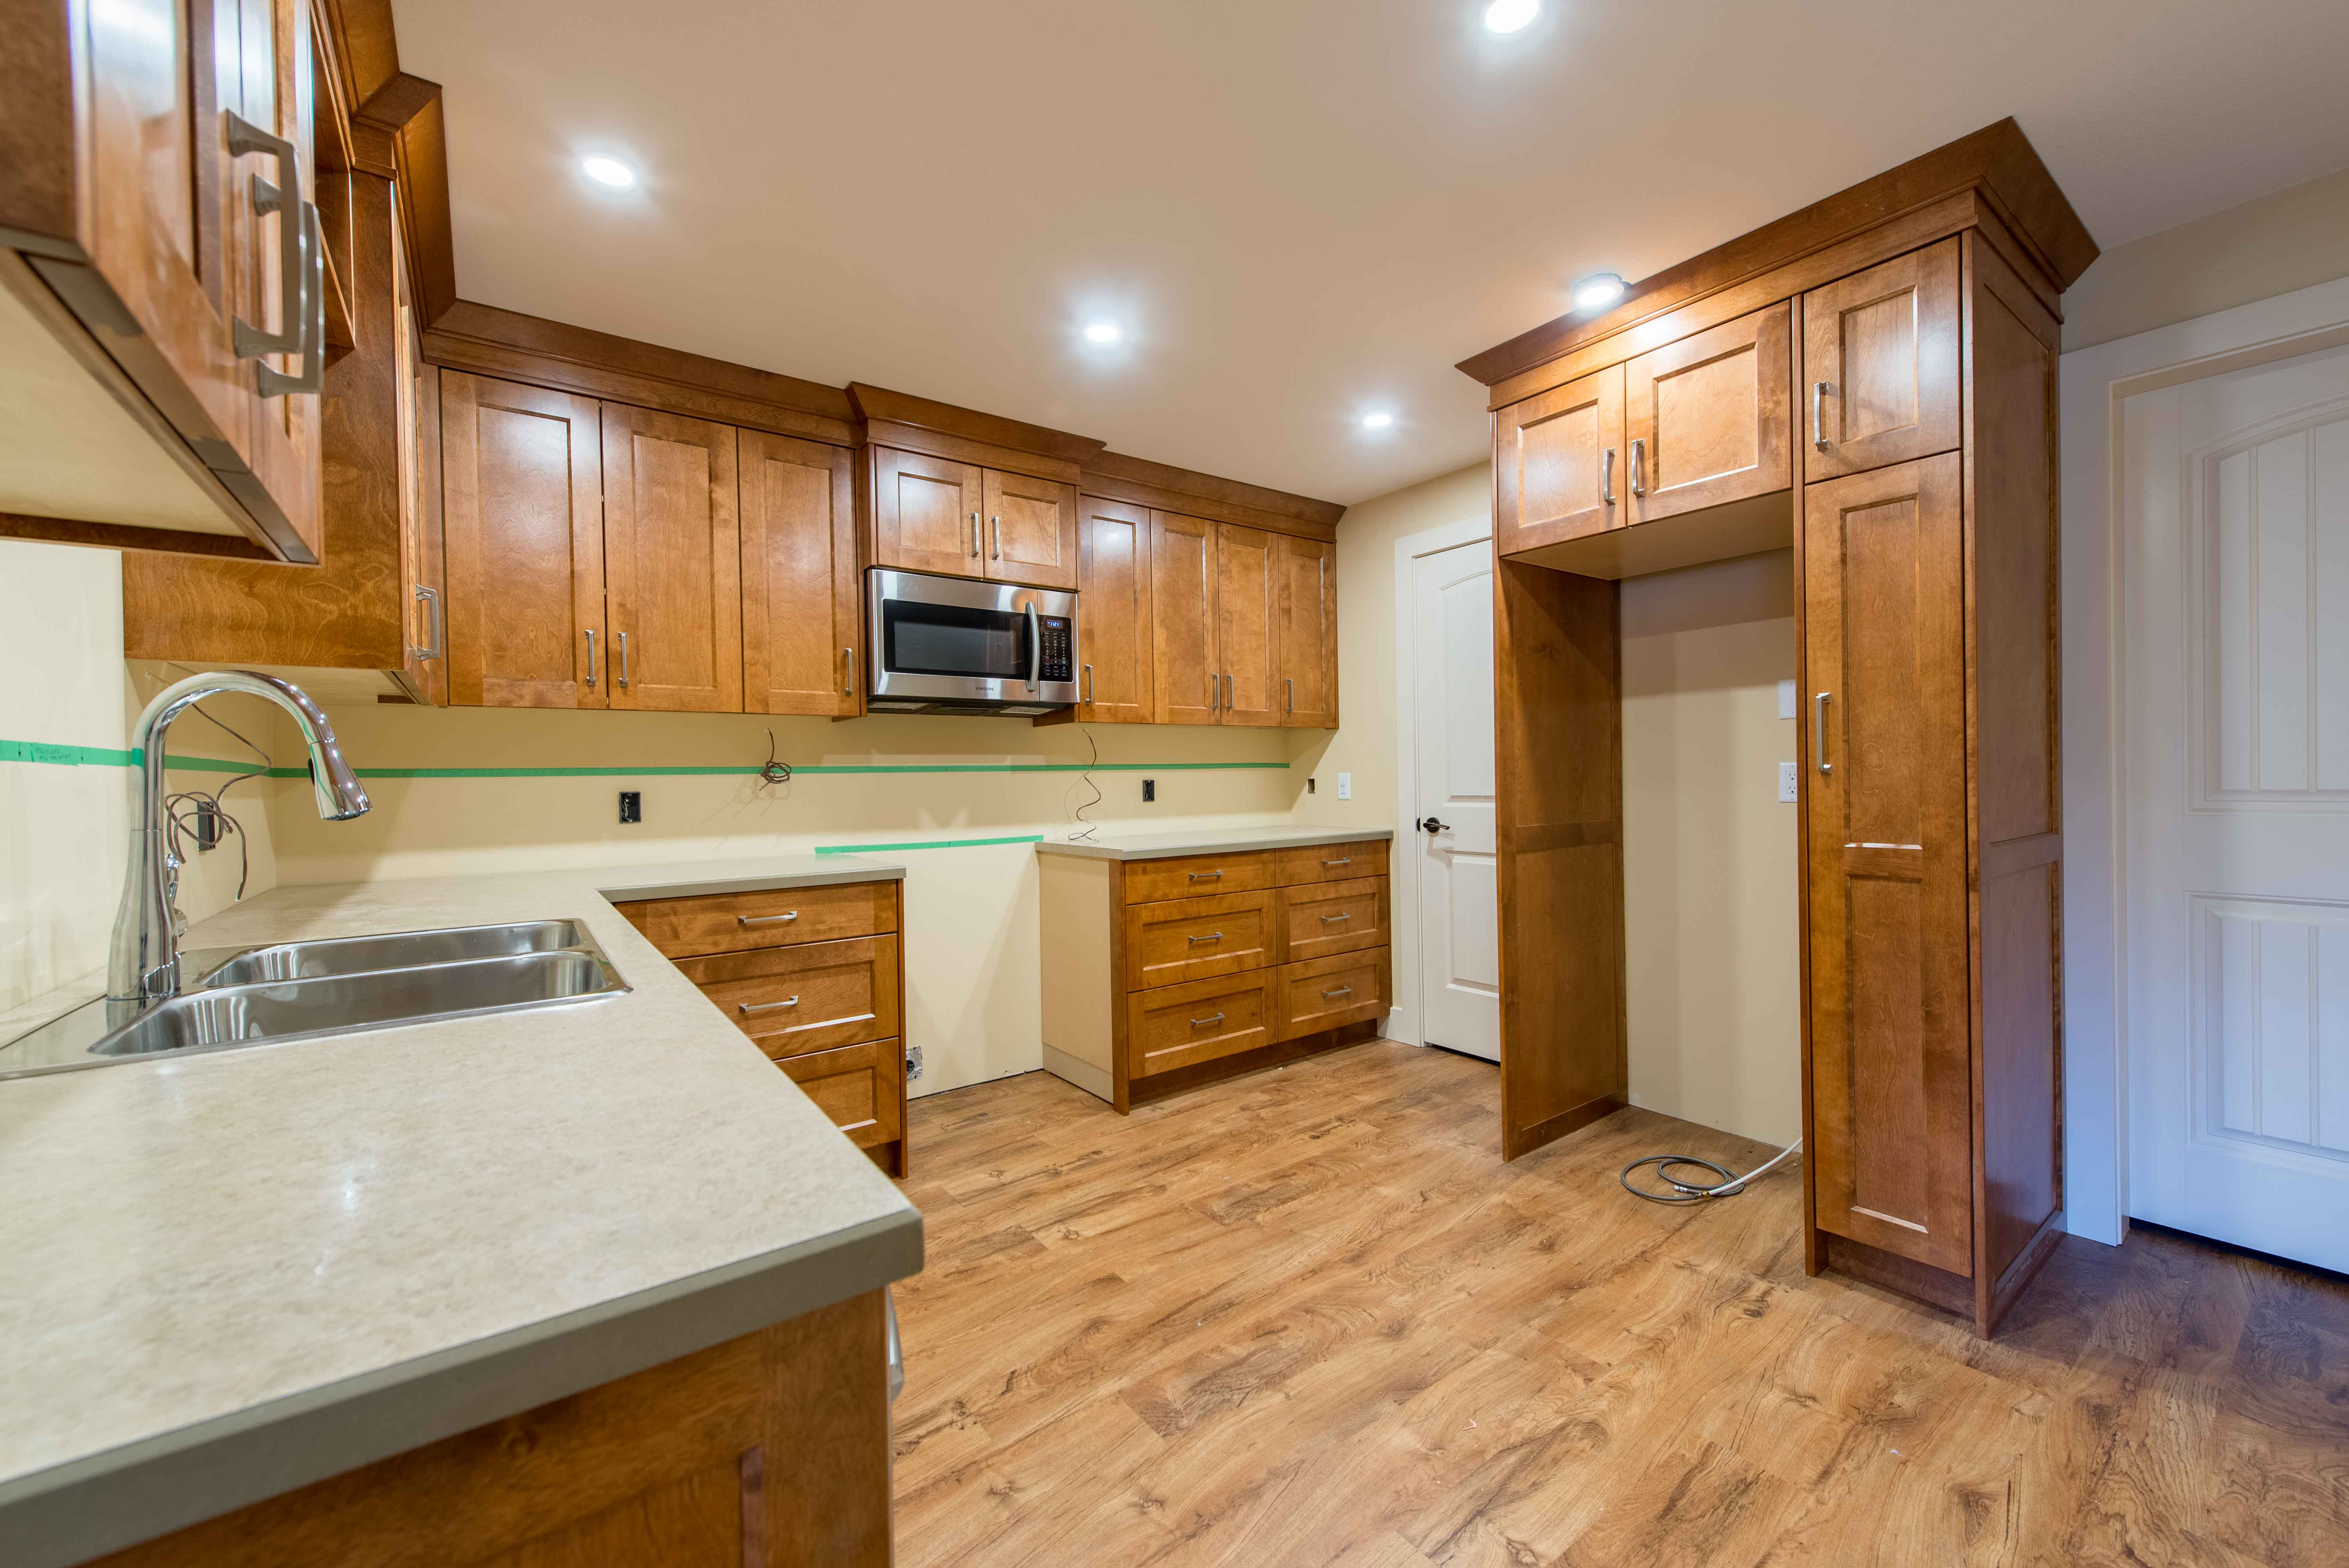 Cinamon-stained Birch Cabinetry